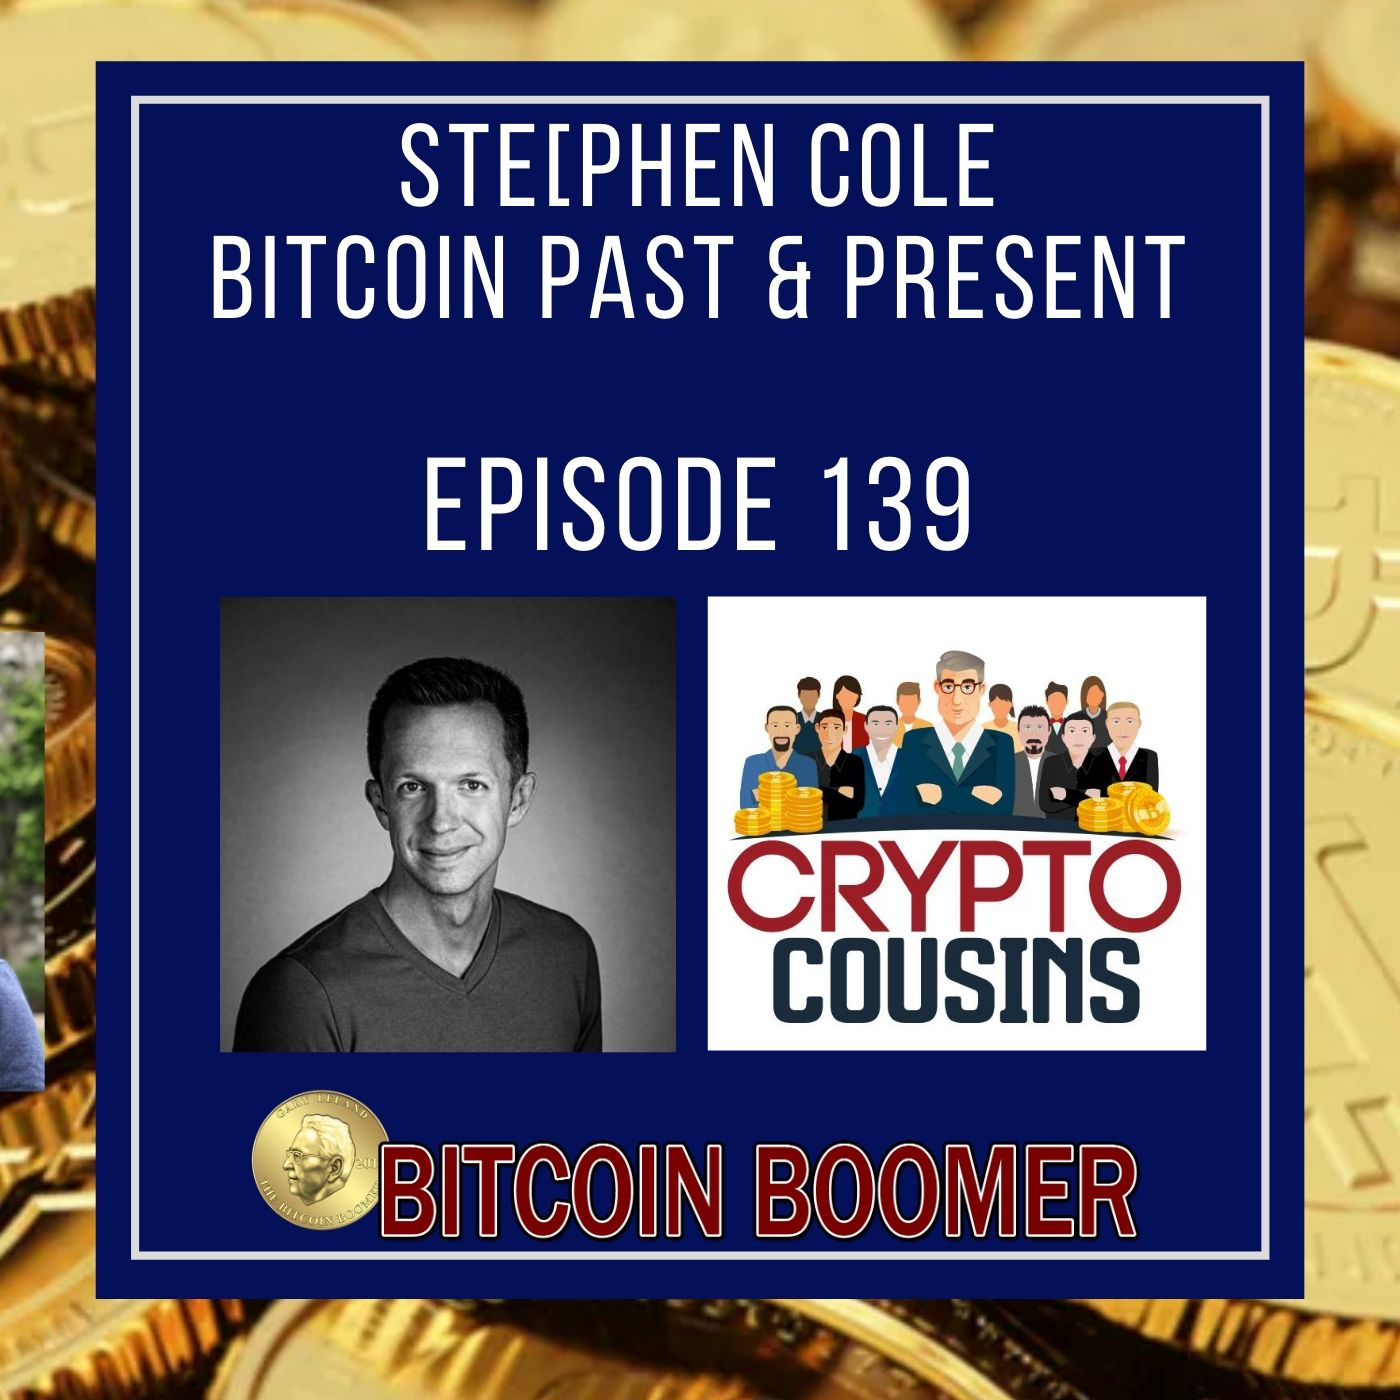 Another Long Time Bitcoiner - Stephen Cole